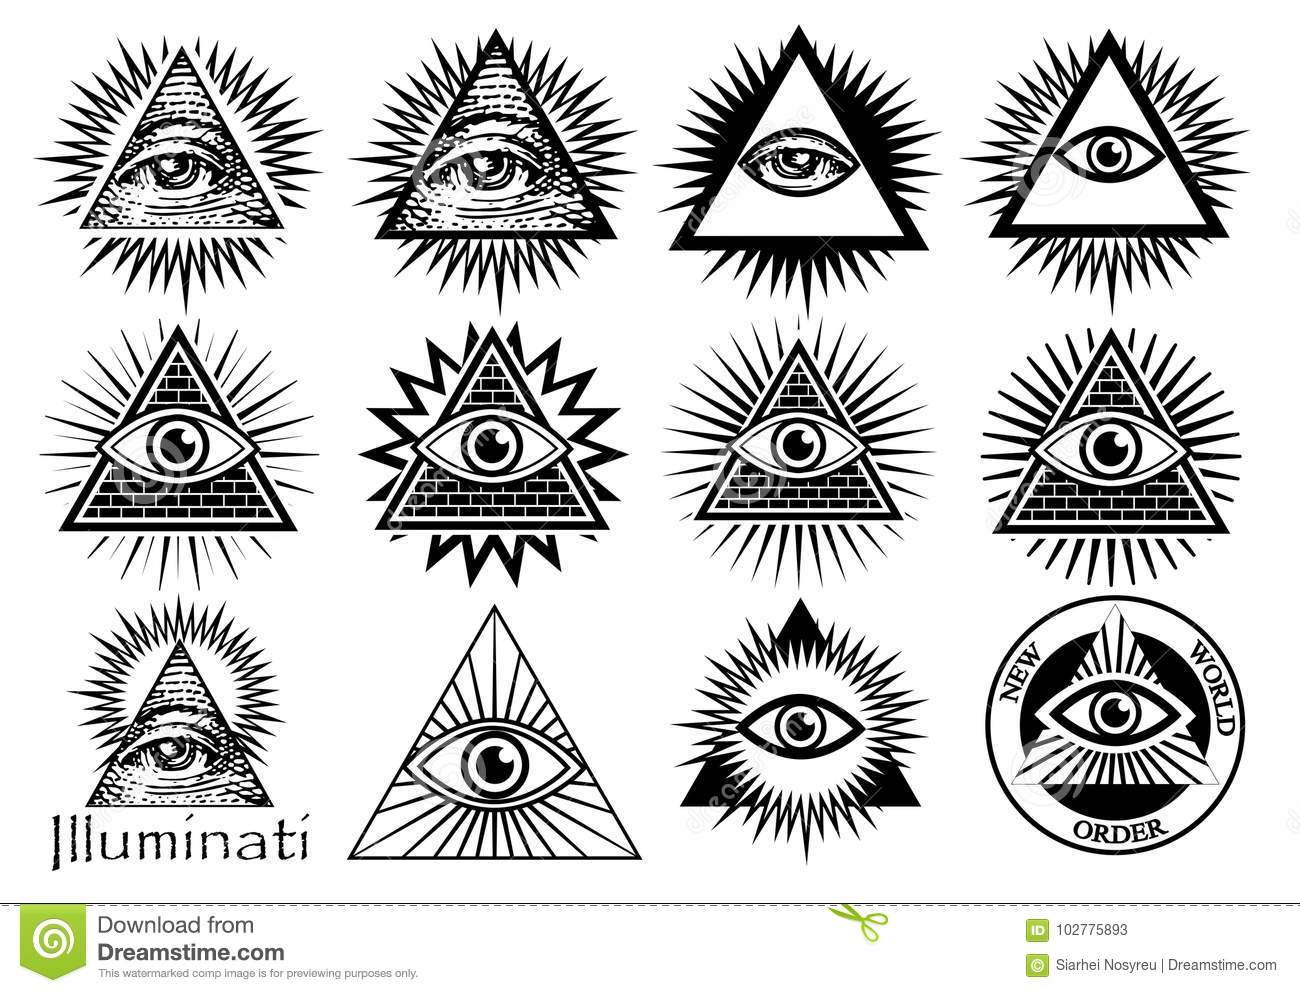 Illuminati Symbols Masonic Sign All Seeing Eye Stock Vector